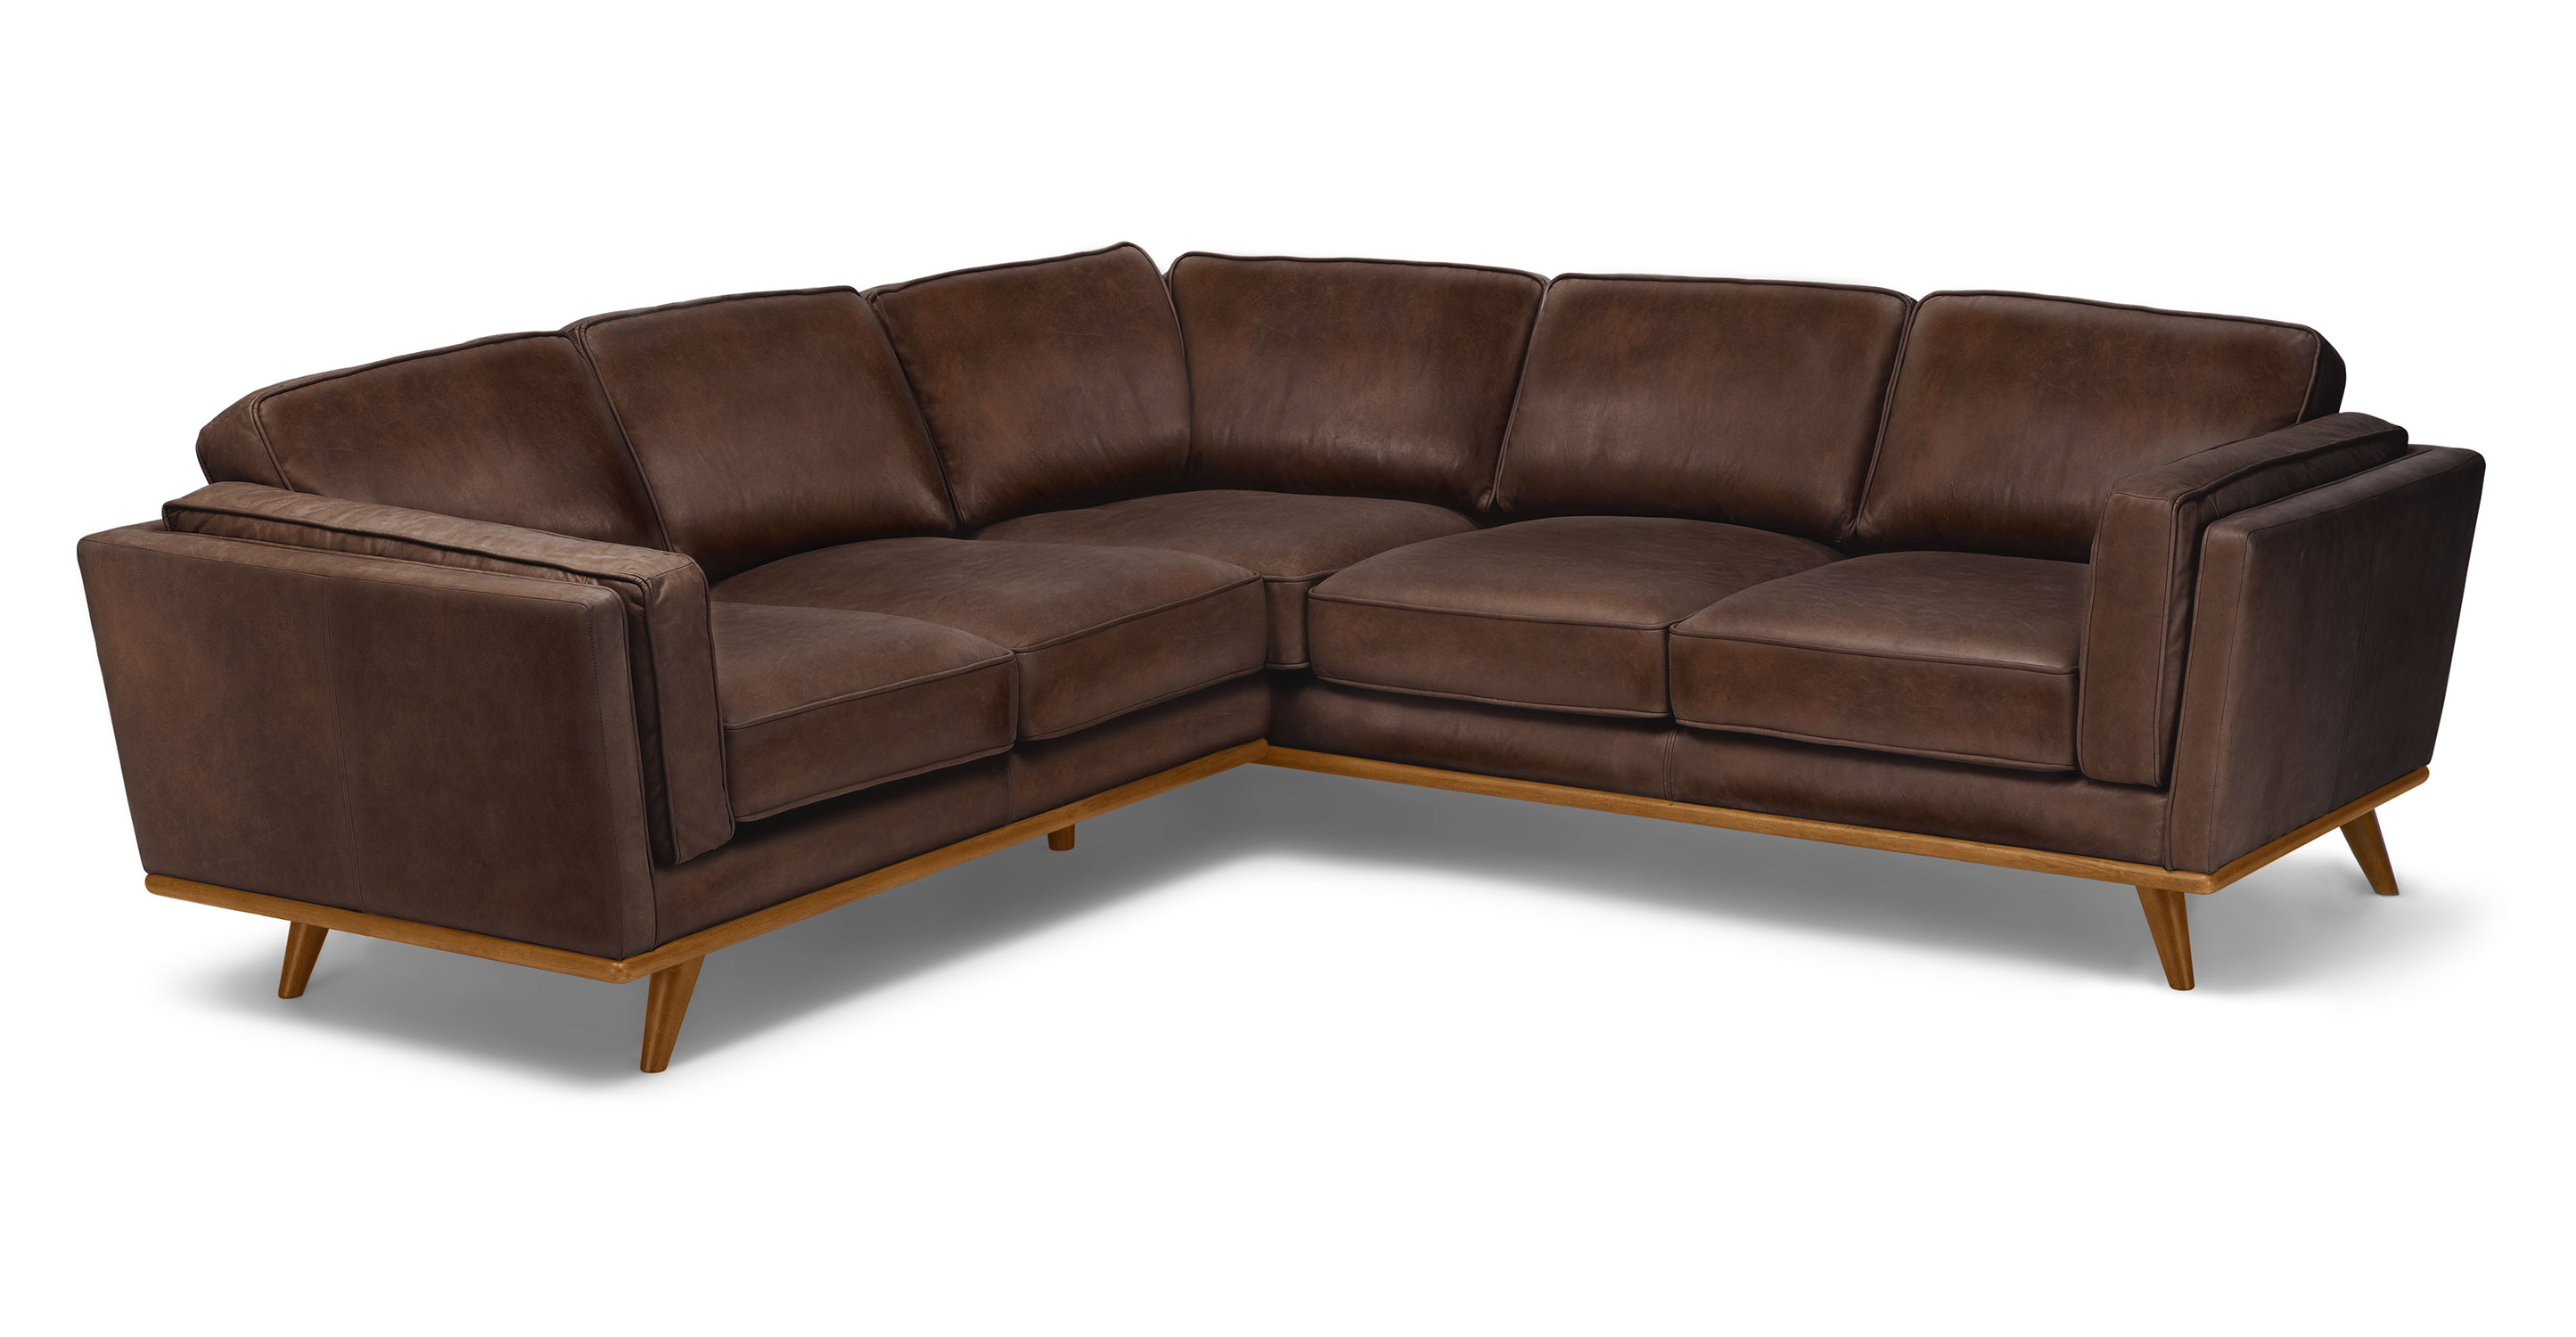 down sofas canada stressless windsor 2 seater high back sofa timber charme chocolat corner sectional sectionals